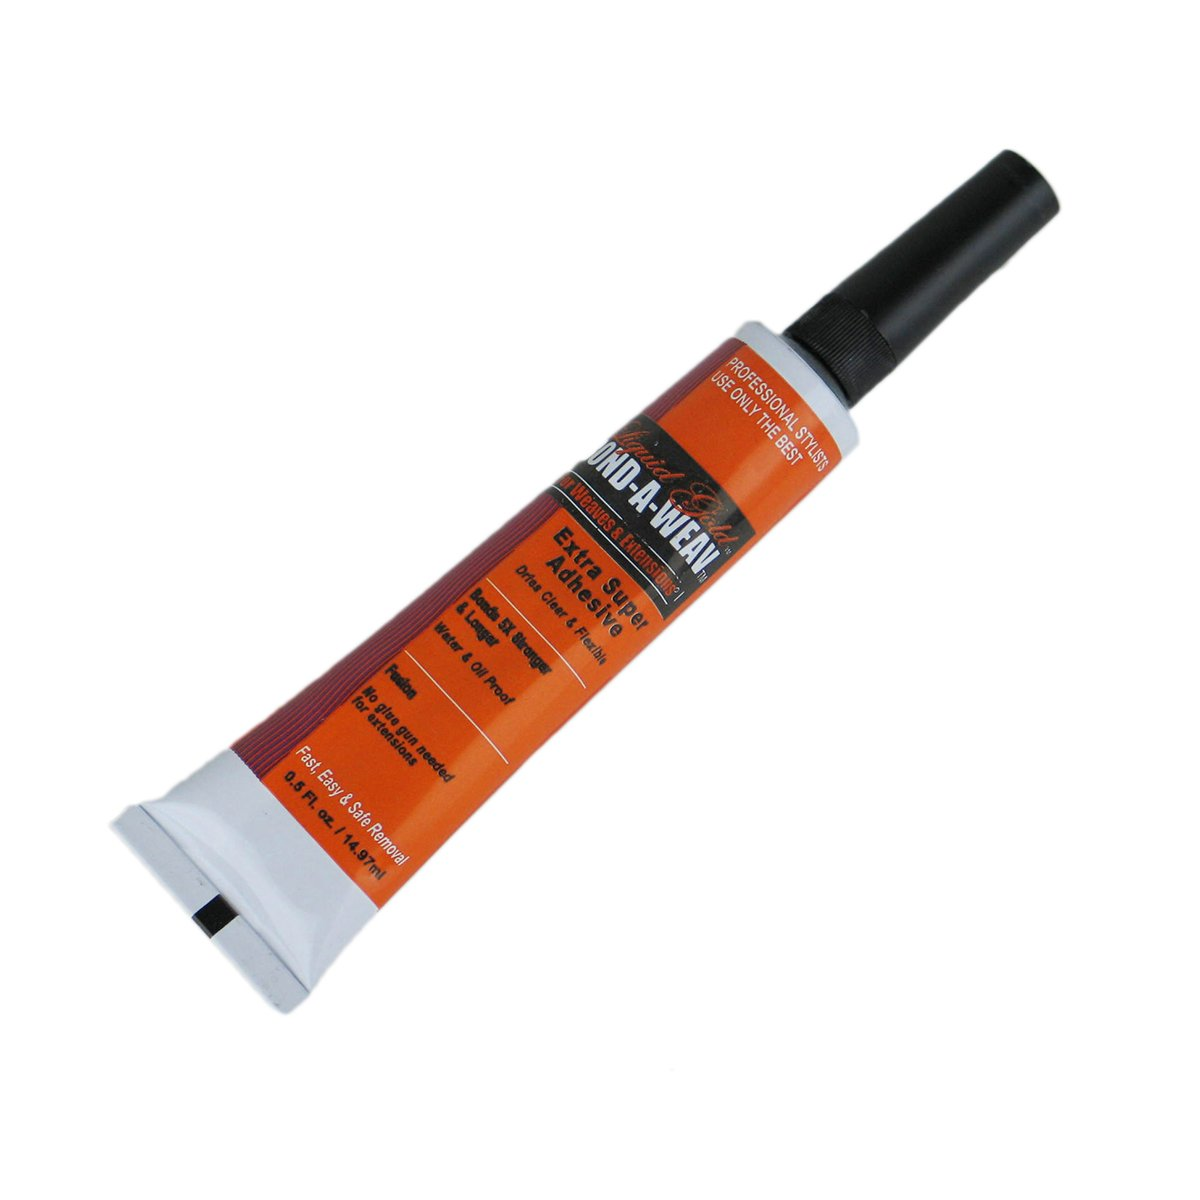 Liquid Gold Bond A Weav Extra Super Adhesive 1 oz Tube for Weaves and Hair Extensions by Liquid Gold 34604